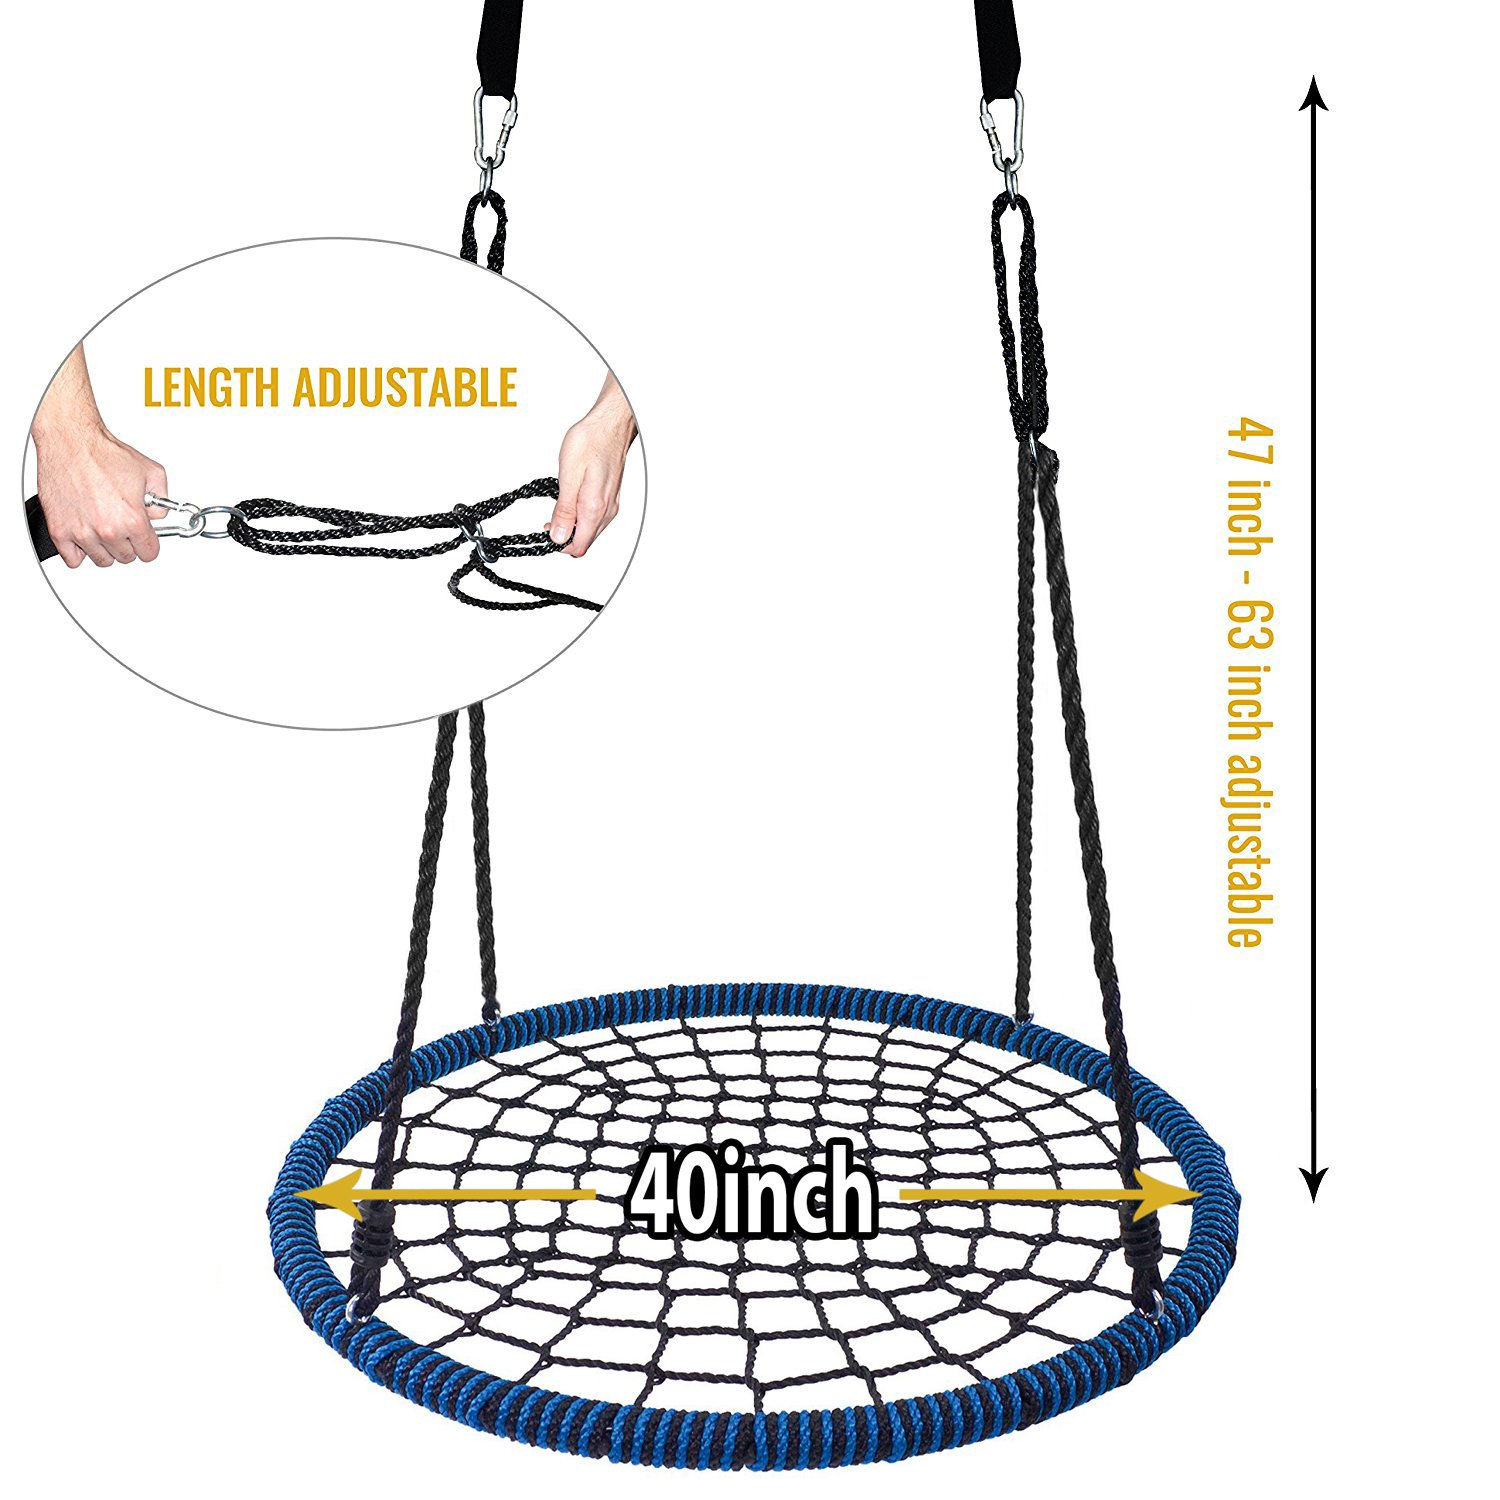 Giant 40'' Spider Web Tree Swing in Elite Blue, 600 lb Weight Capacity, Durable Steel Frame, Waterproof, Adjustable Ropes, Comes Assembled, Bonus Flag Set and 2 Carabiners, Non-Stop Fun for Kids! by Royal Oak (Image #1)